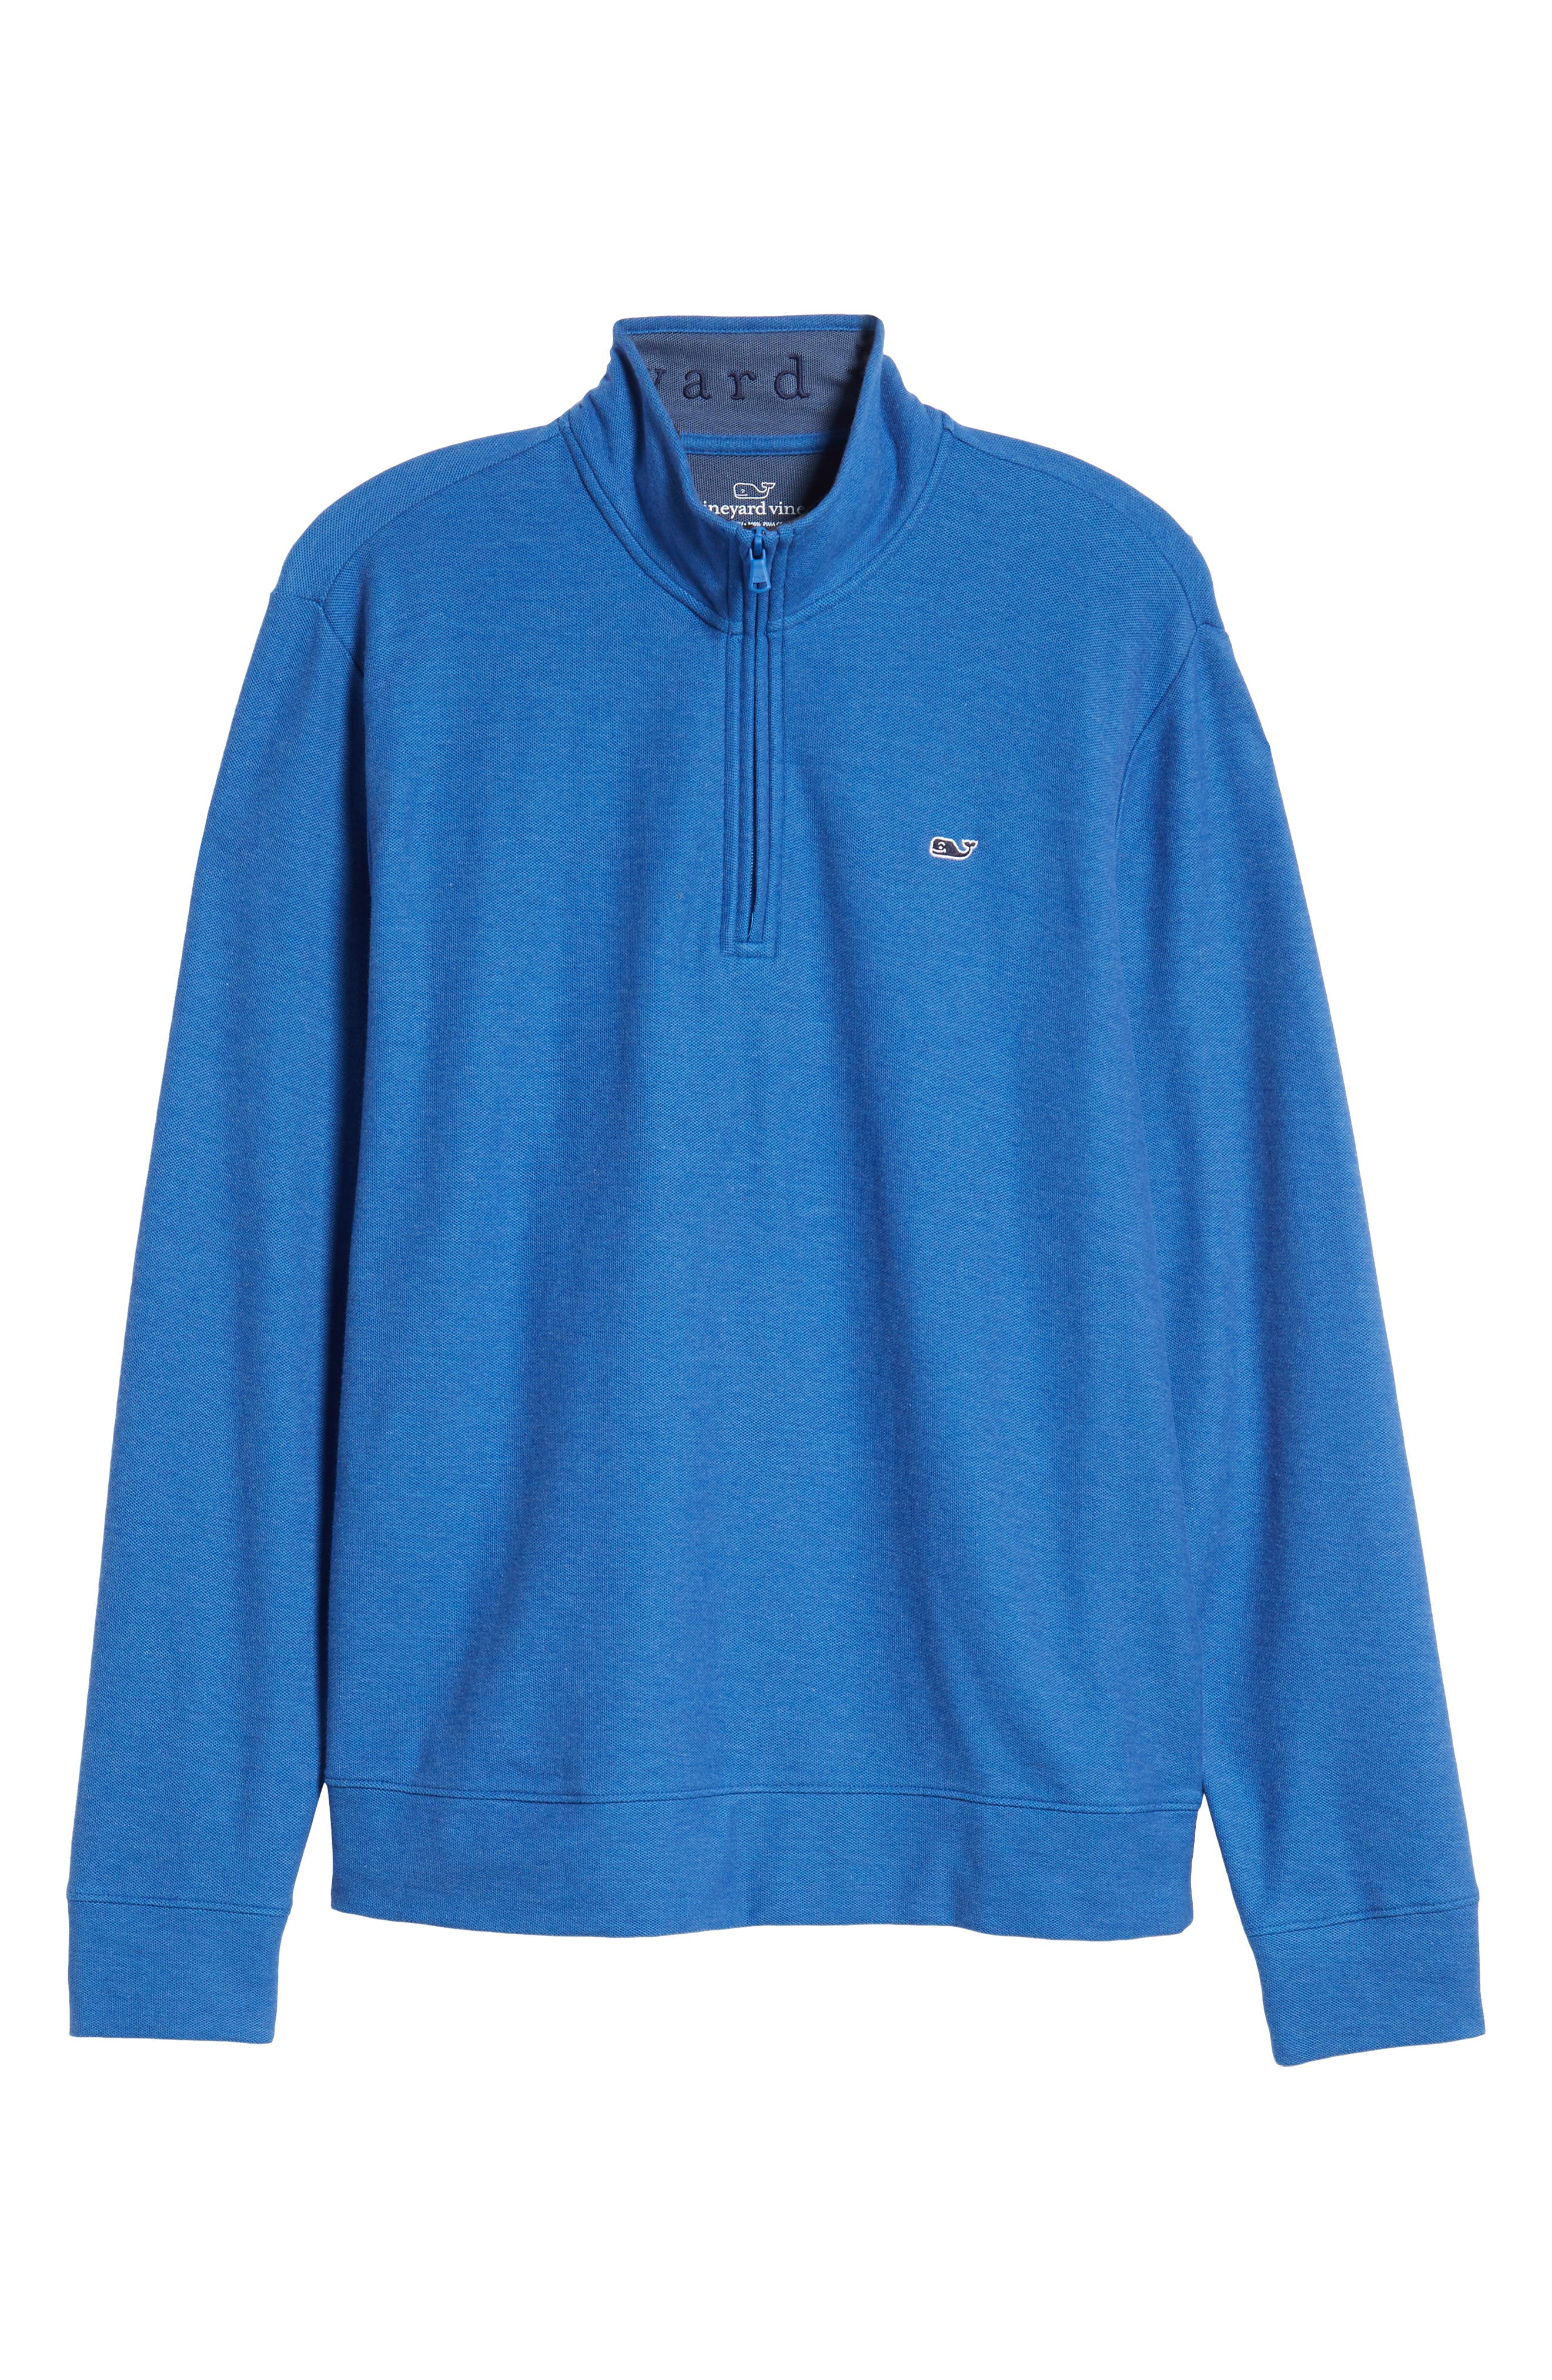 Breaker Saltwater Quarter Zip Pullover,                             Alternate thumbnail 6, color,                             HULL BLUE